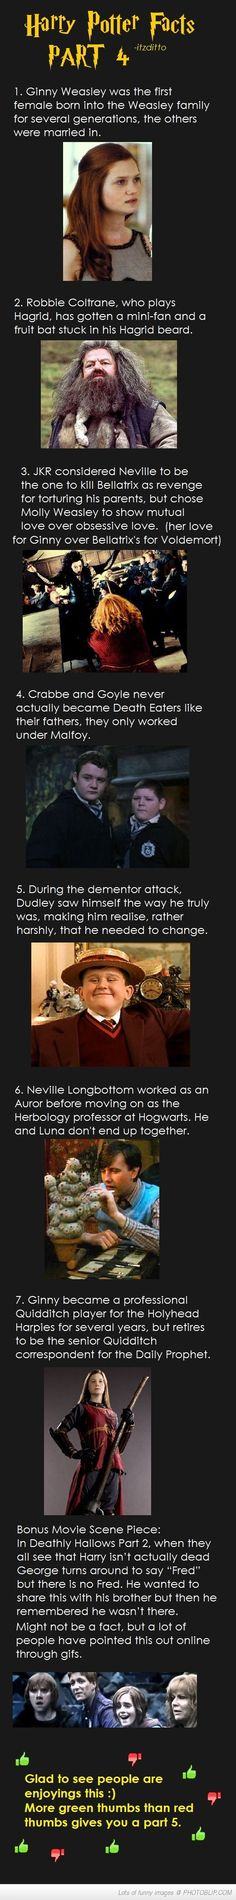 Harry Potter Facts Part